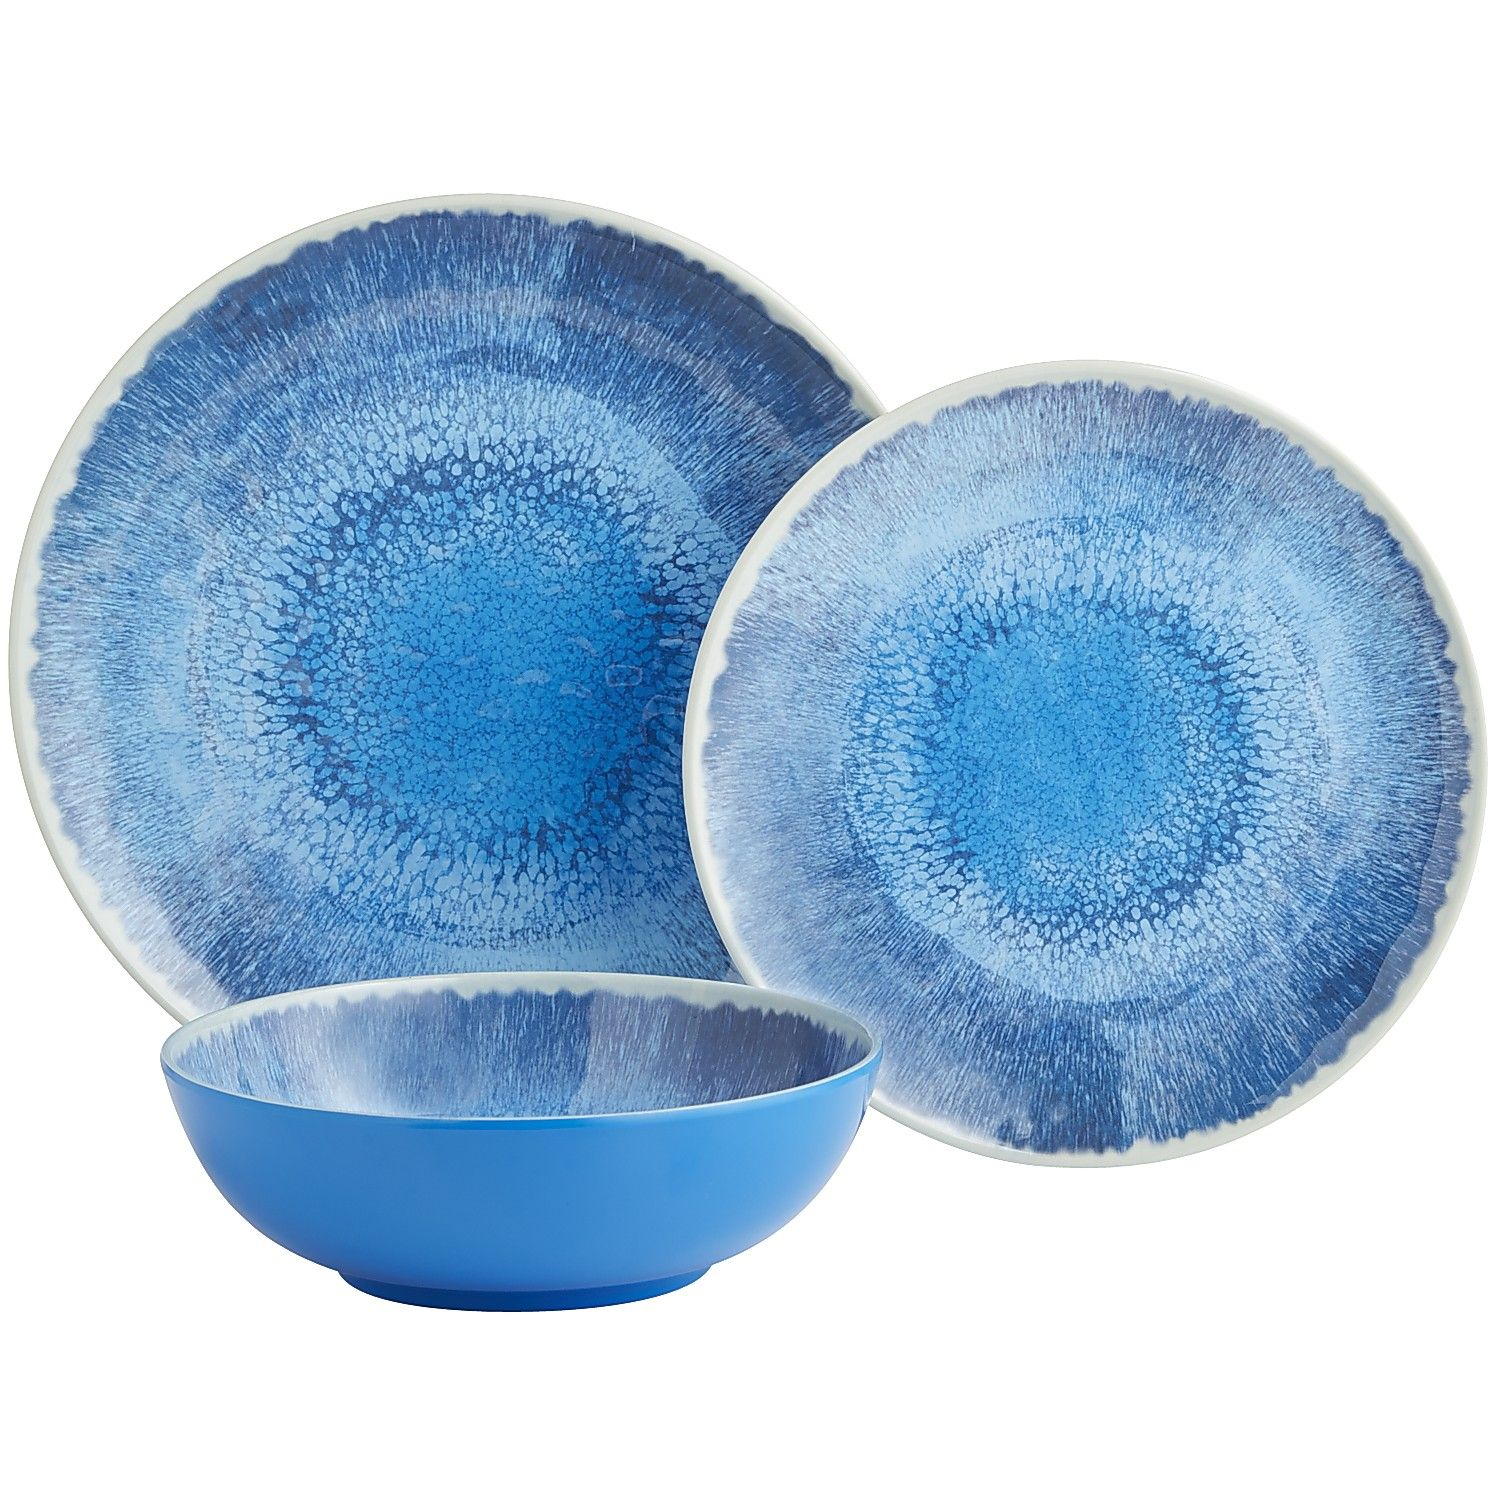 Waterways Melamine Dinnerware   Blue · Outdoor DinnerwareMelamine DinnerwareDinnerware  SetsDinner ...